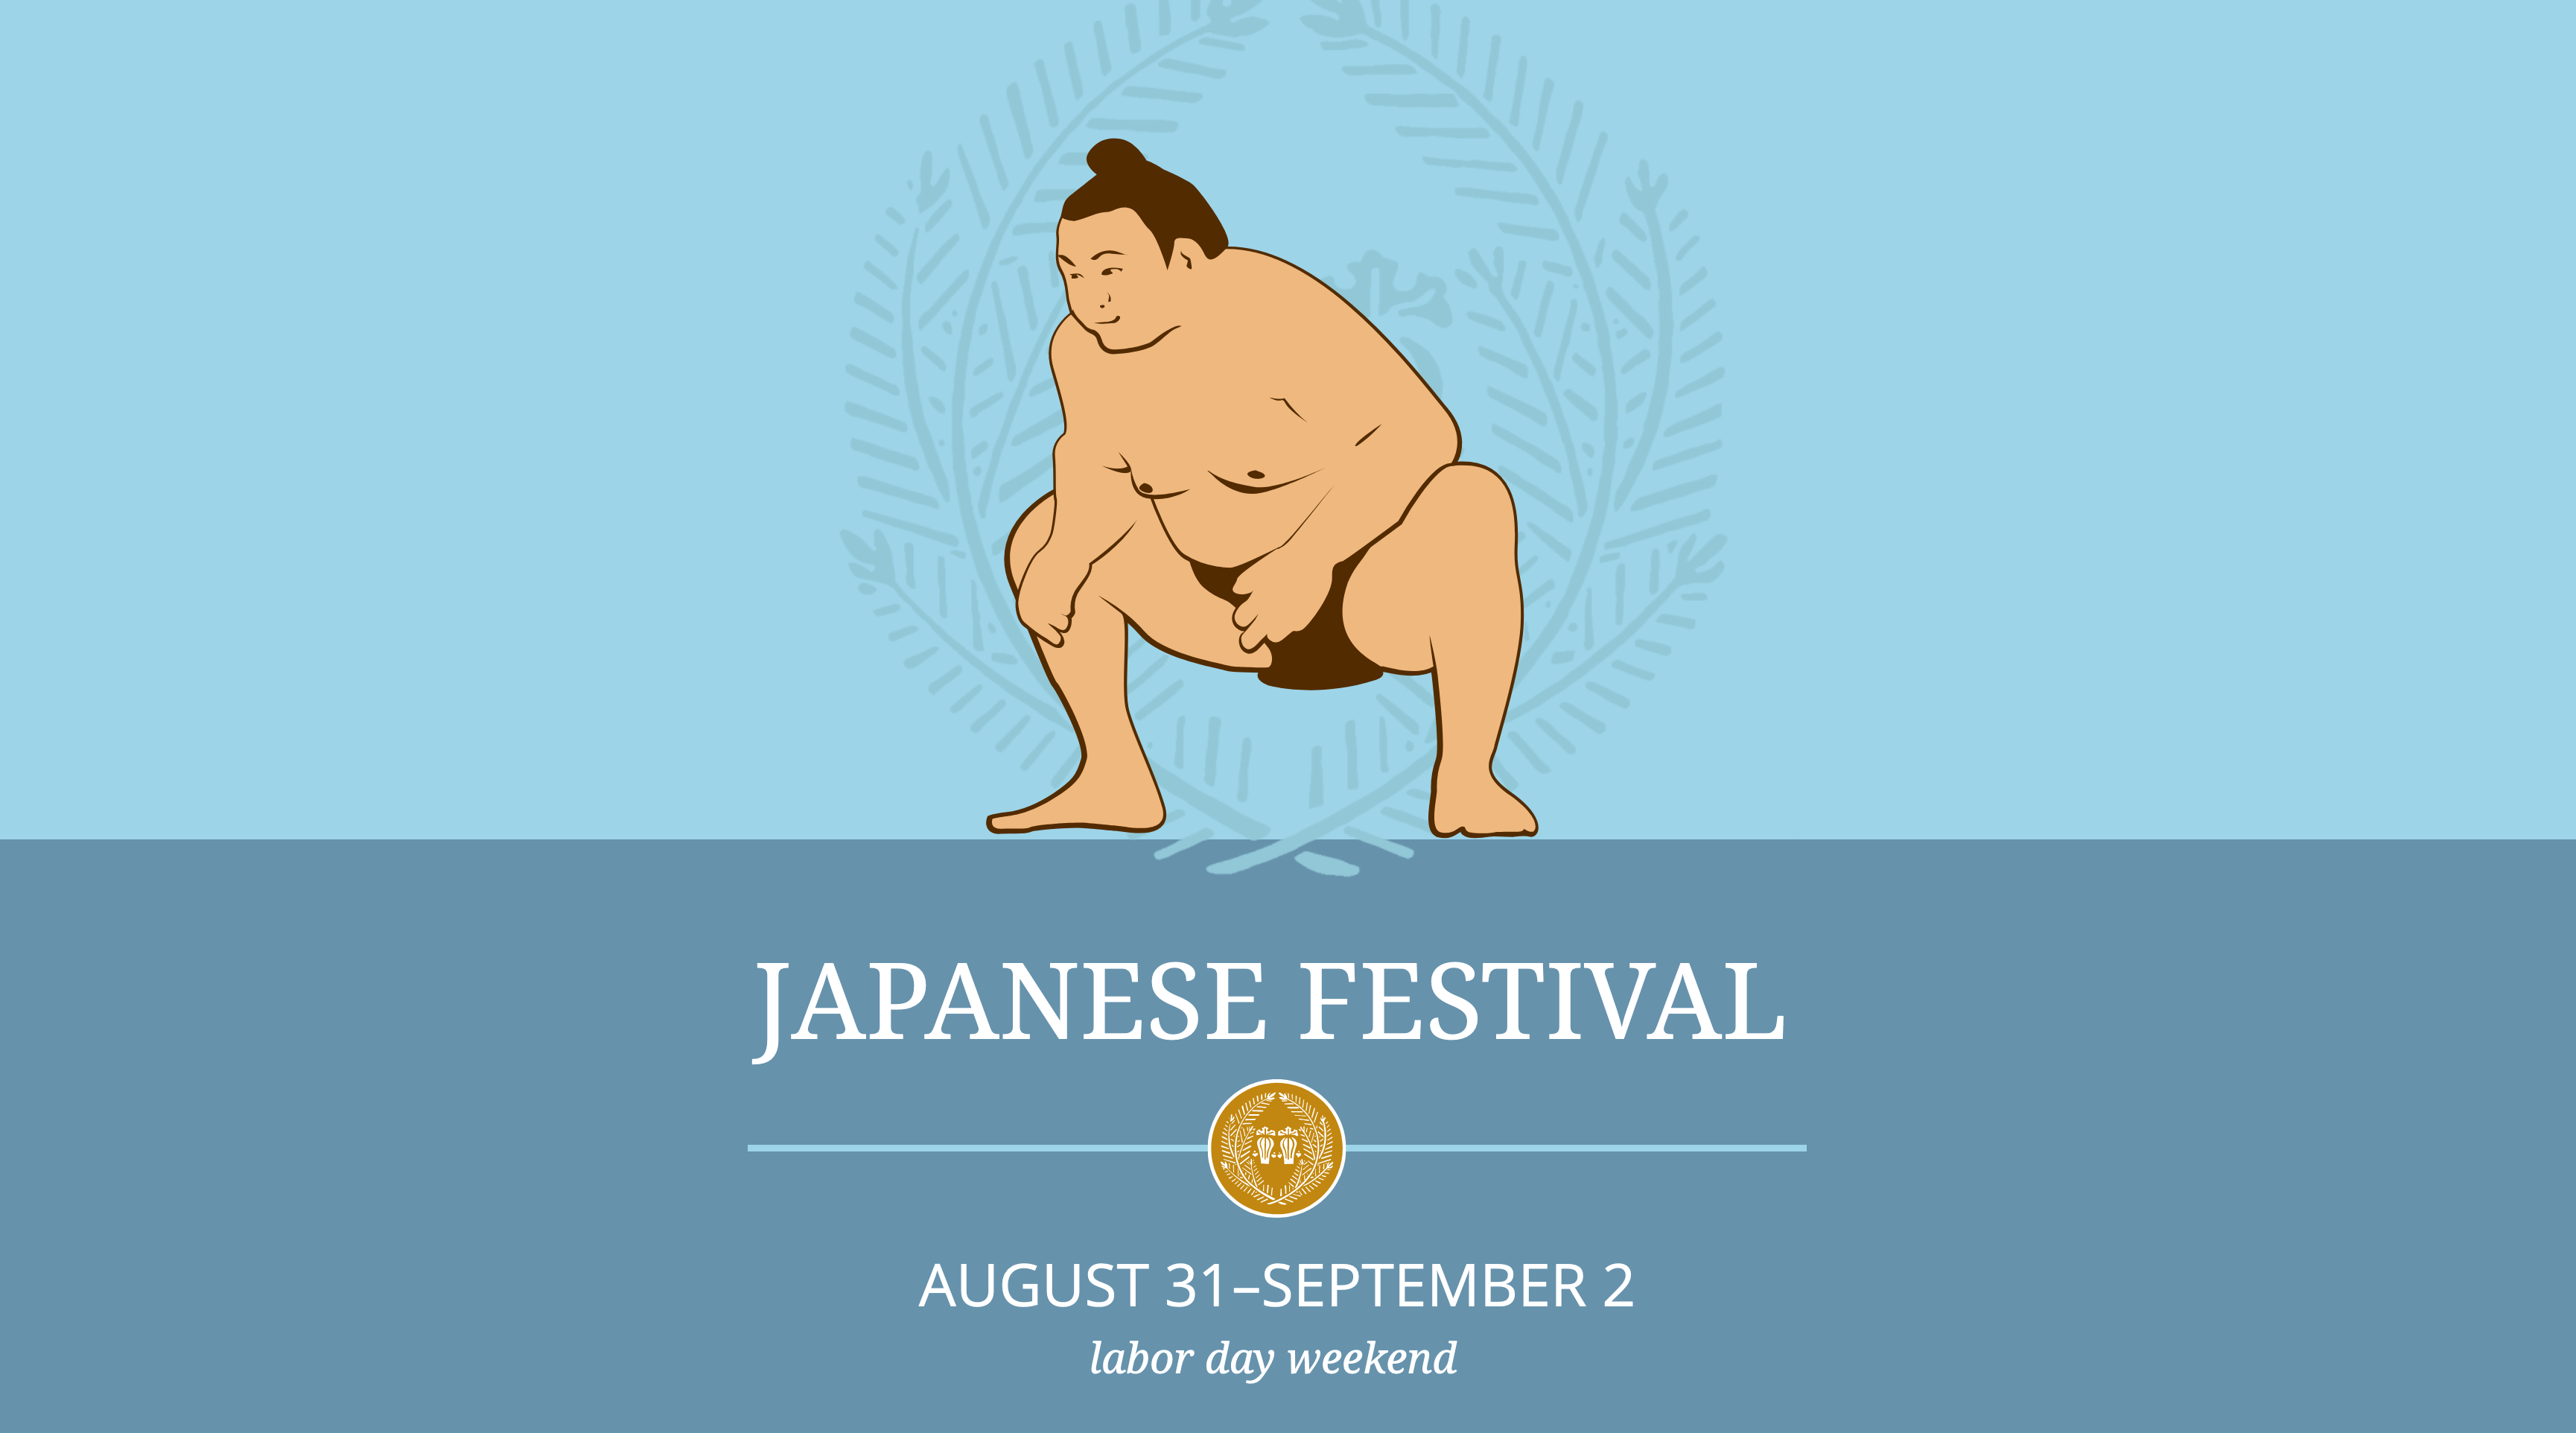 Japanese Festival sumo graphic banner